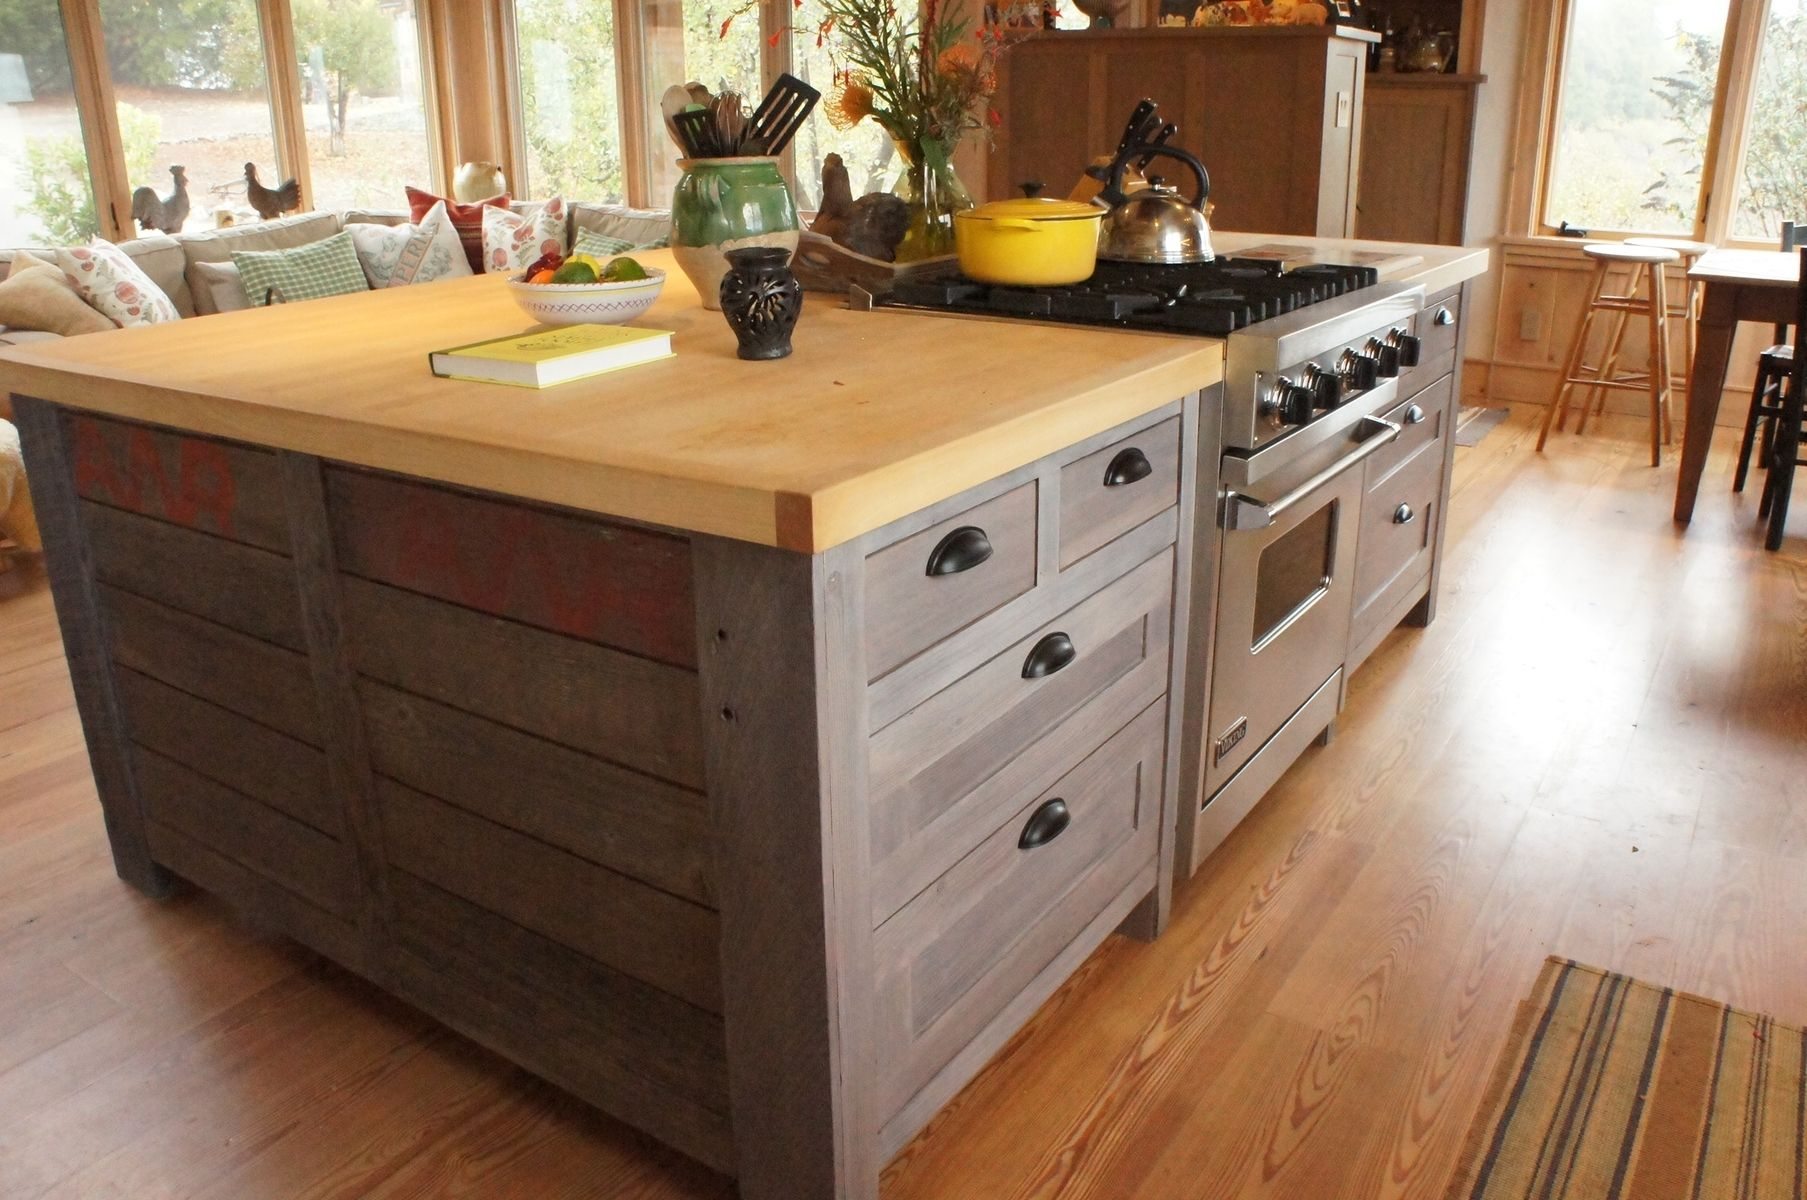 Custom Rustic Kitchen Islands Hand Crafted Rustic Kitchen Islandatlas Stringed Instruments